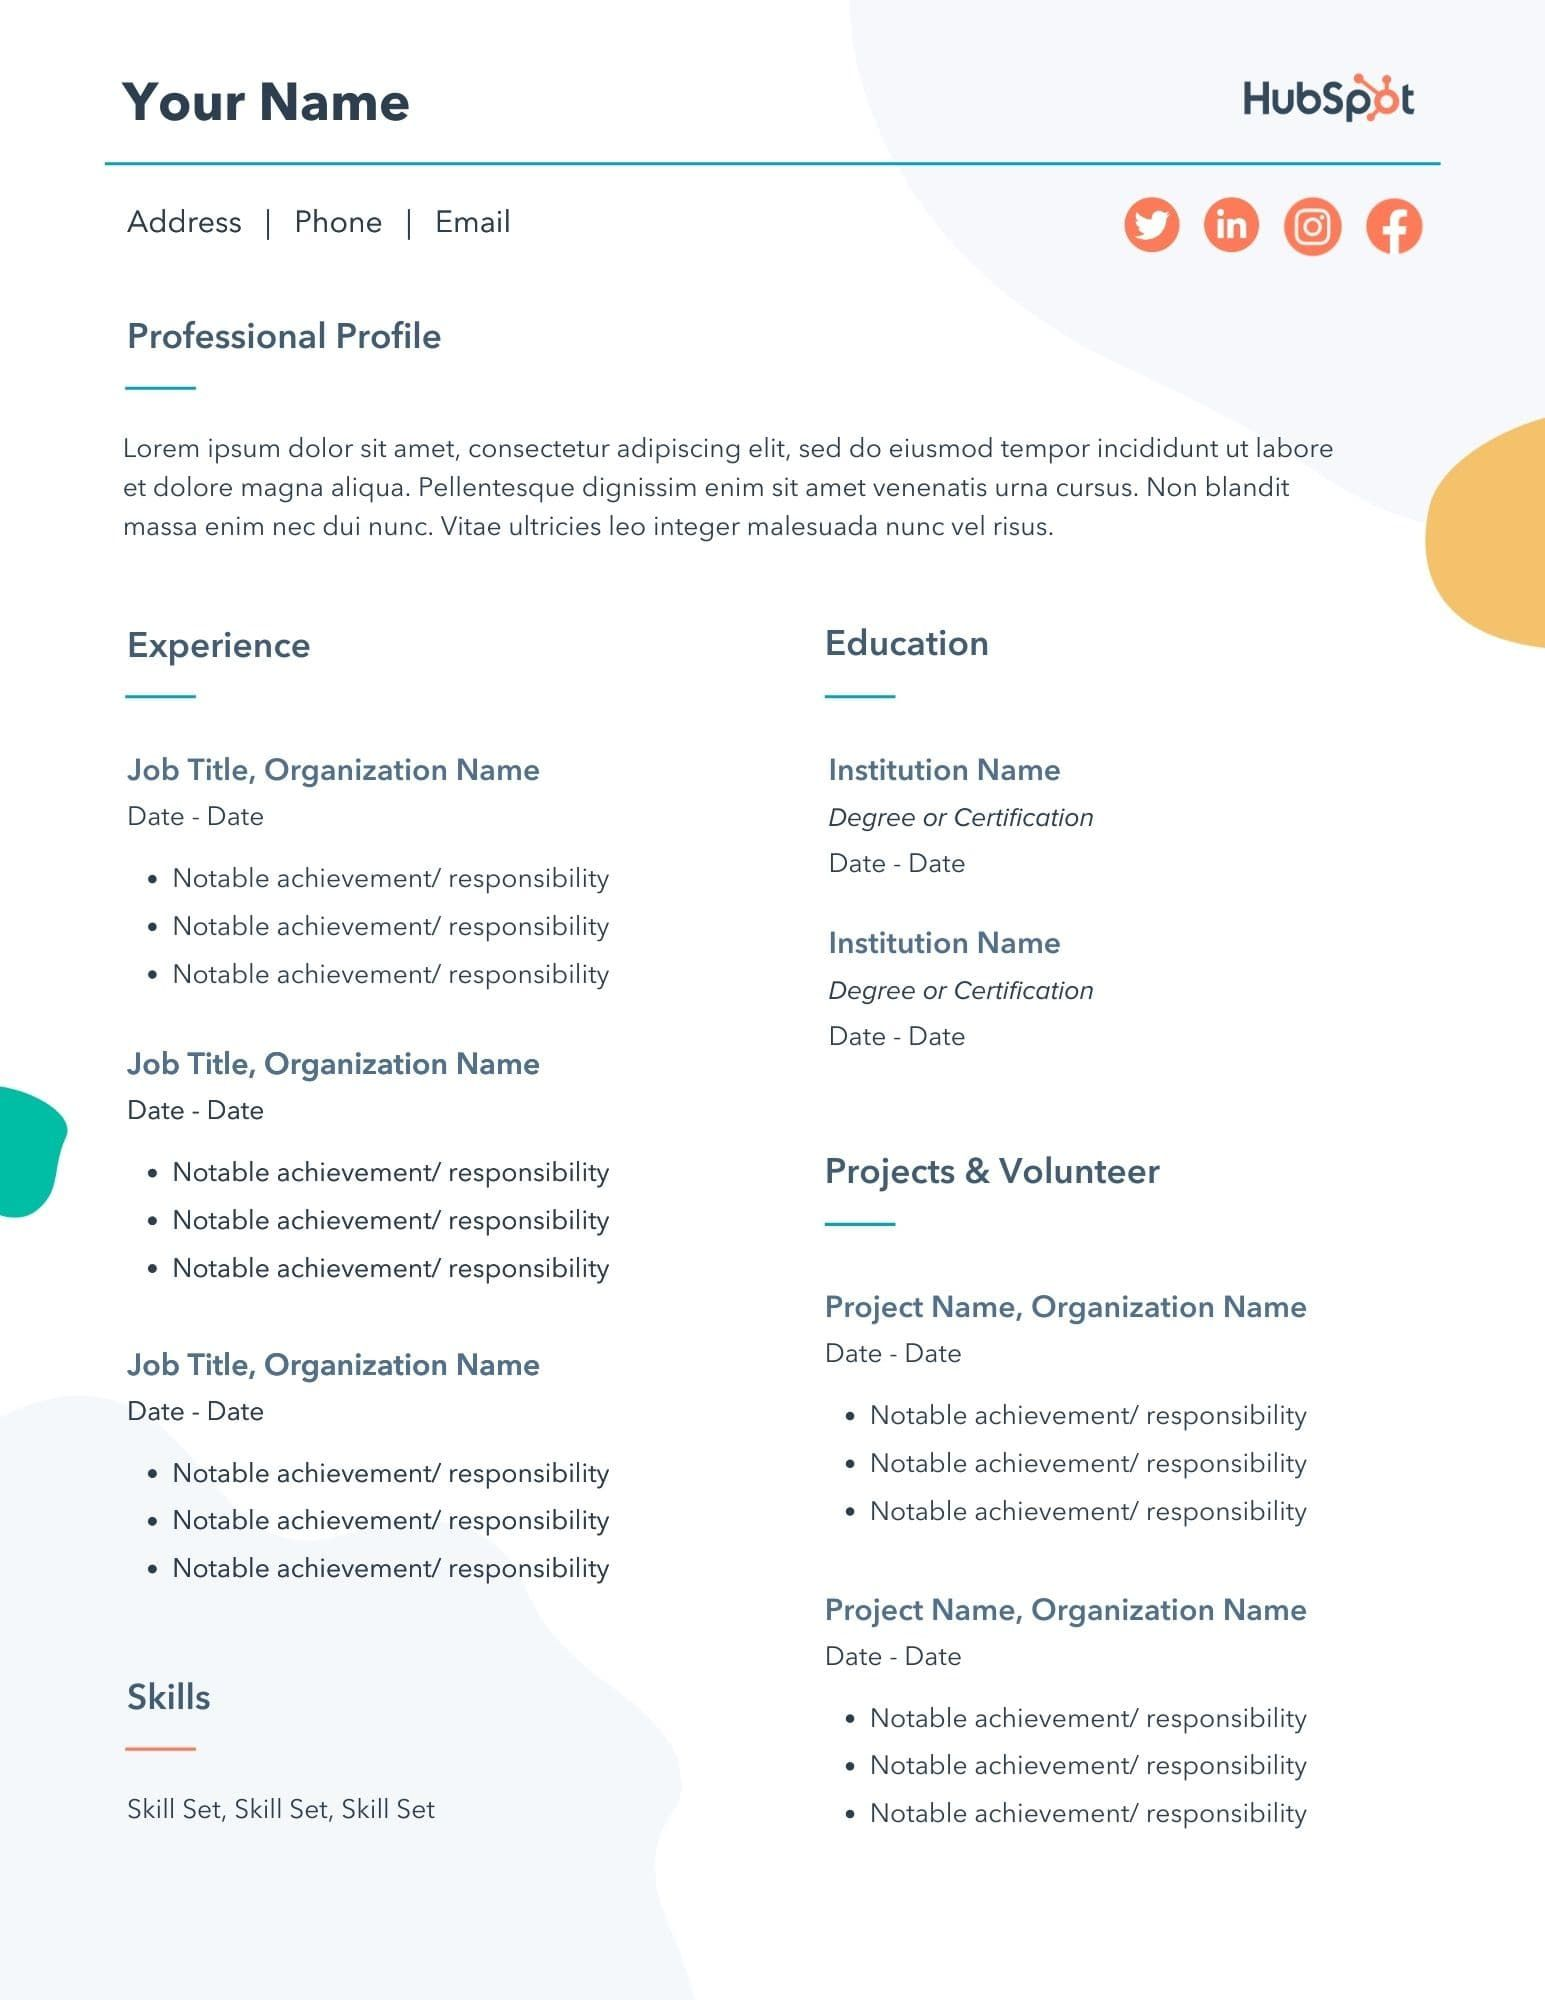 29 Free Resume Templates for Microsoft Word (& How to Make